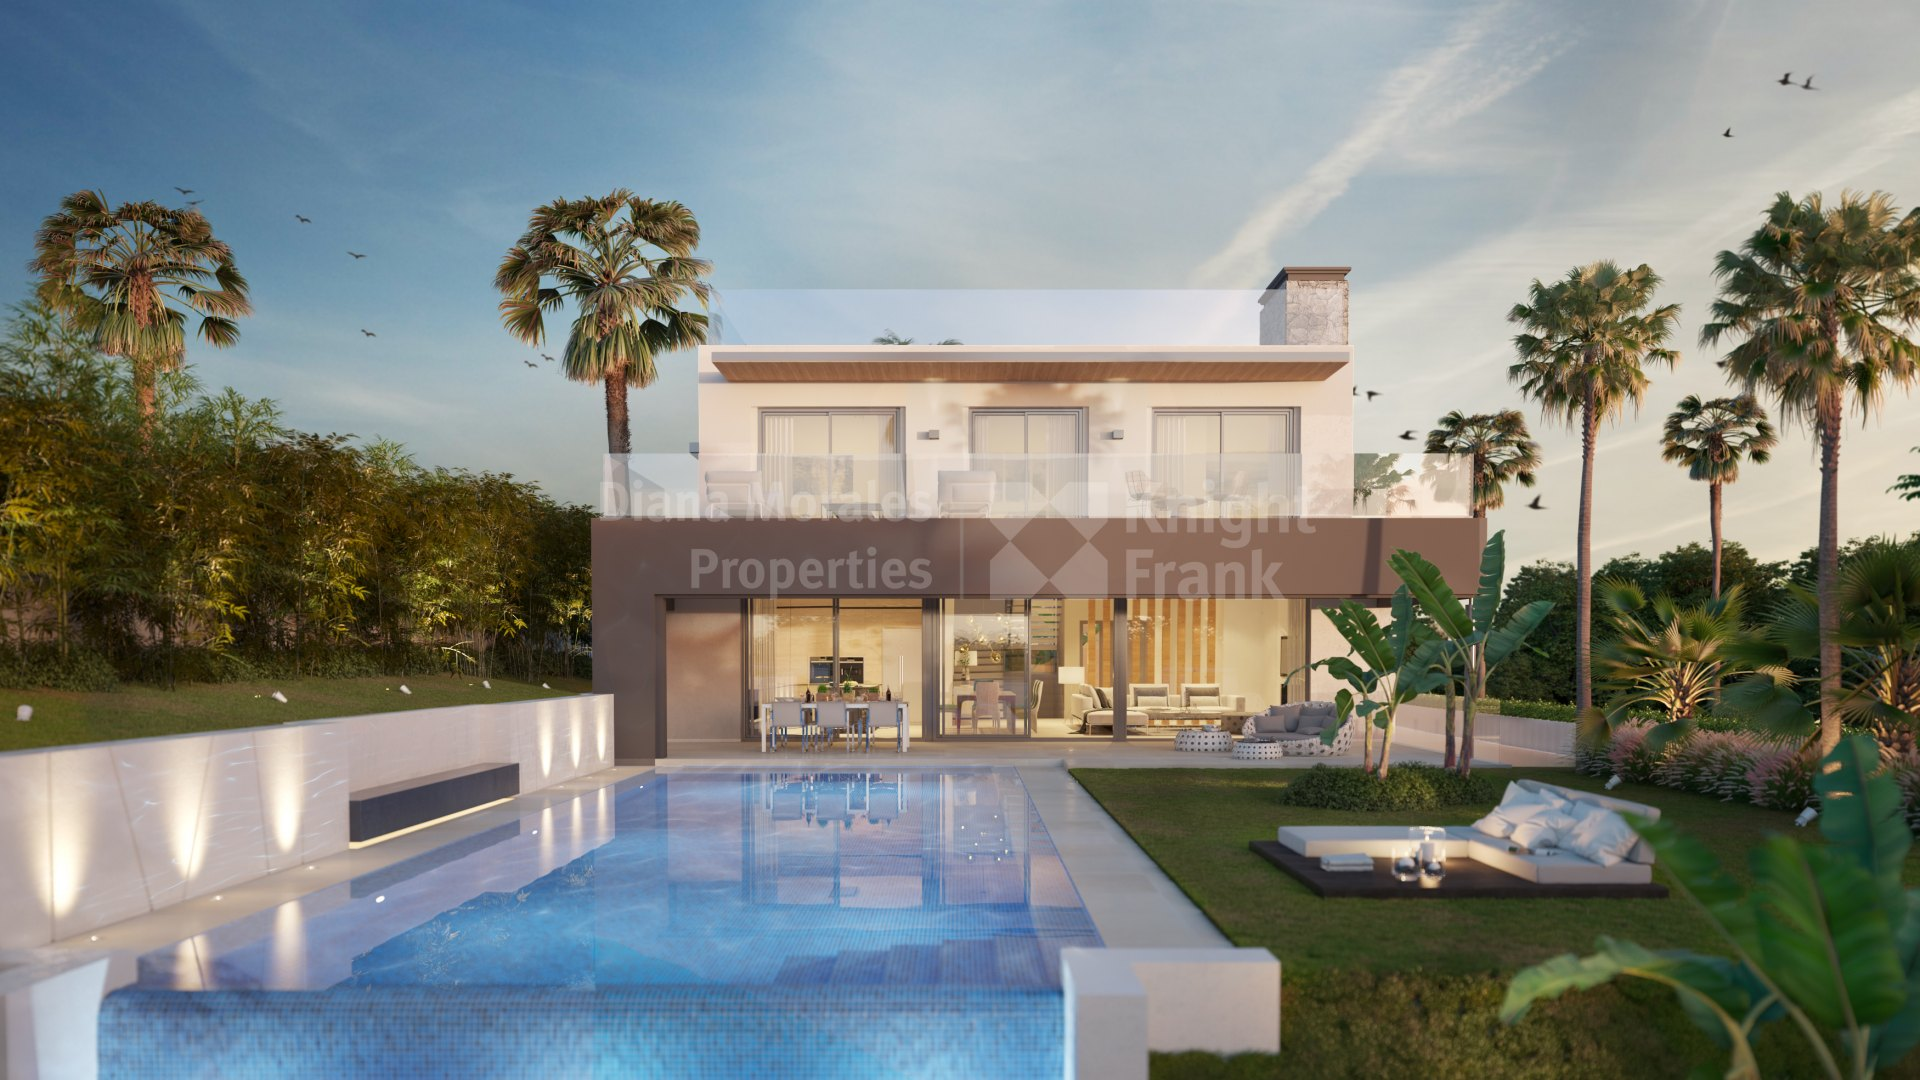 La Cerquilla, Villa under construction in Golf Valley